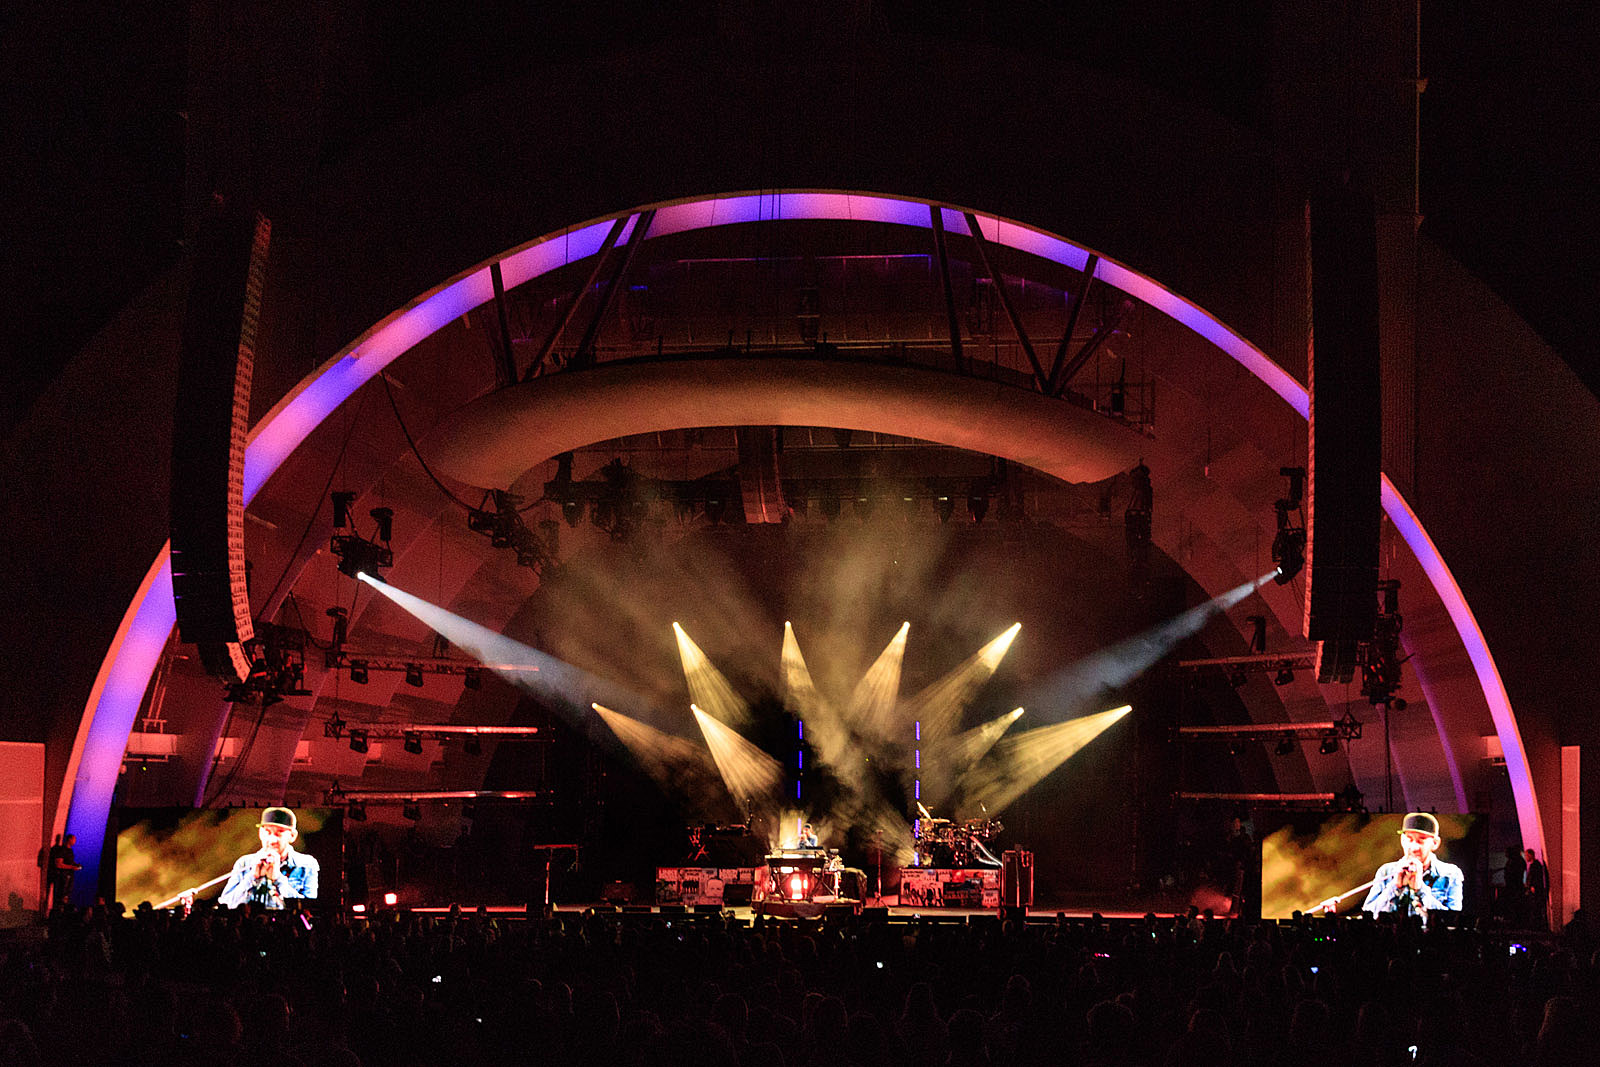 Hollywood Bowl Sets Extensive New Post Vegas Security Measures